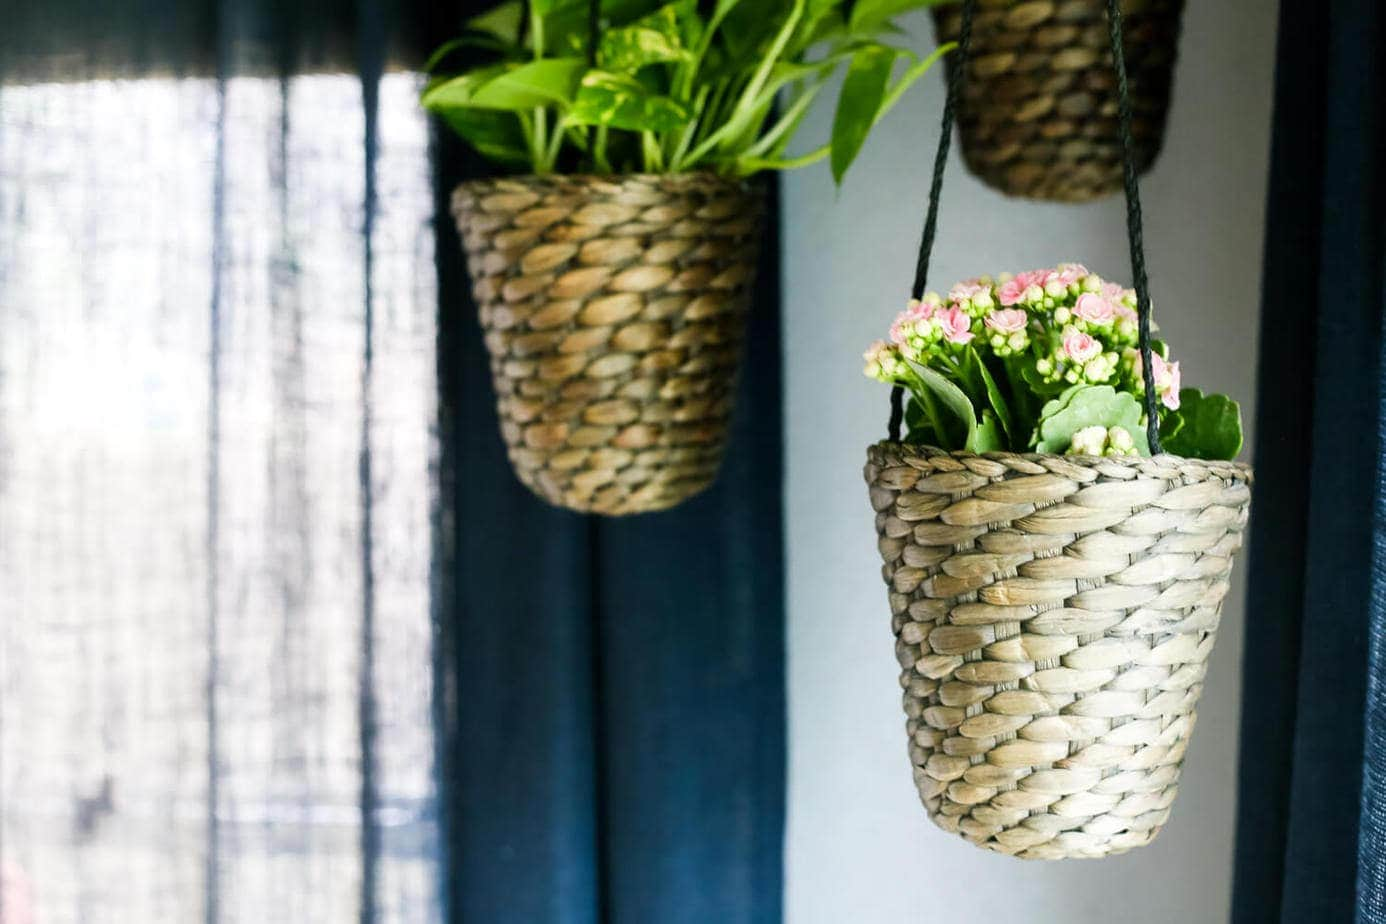 How to add simple hanging planters from IKEA to create this DIY indoor hanging planter display. It's a really simple idea, but makes a big statement in your room!